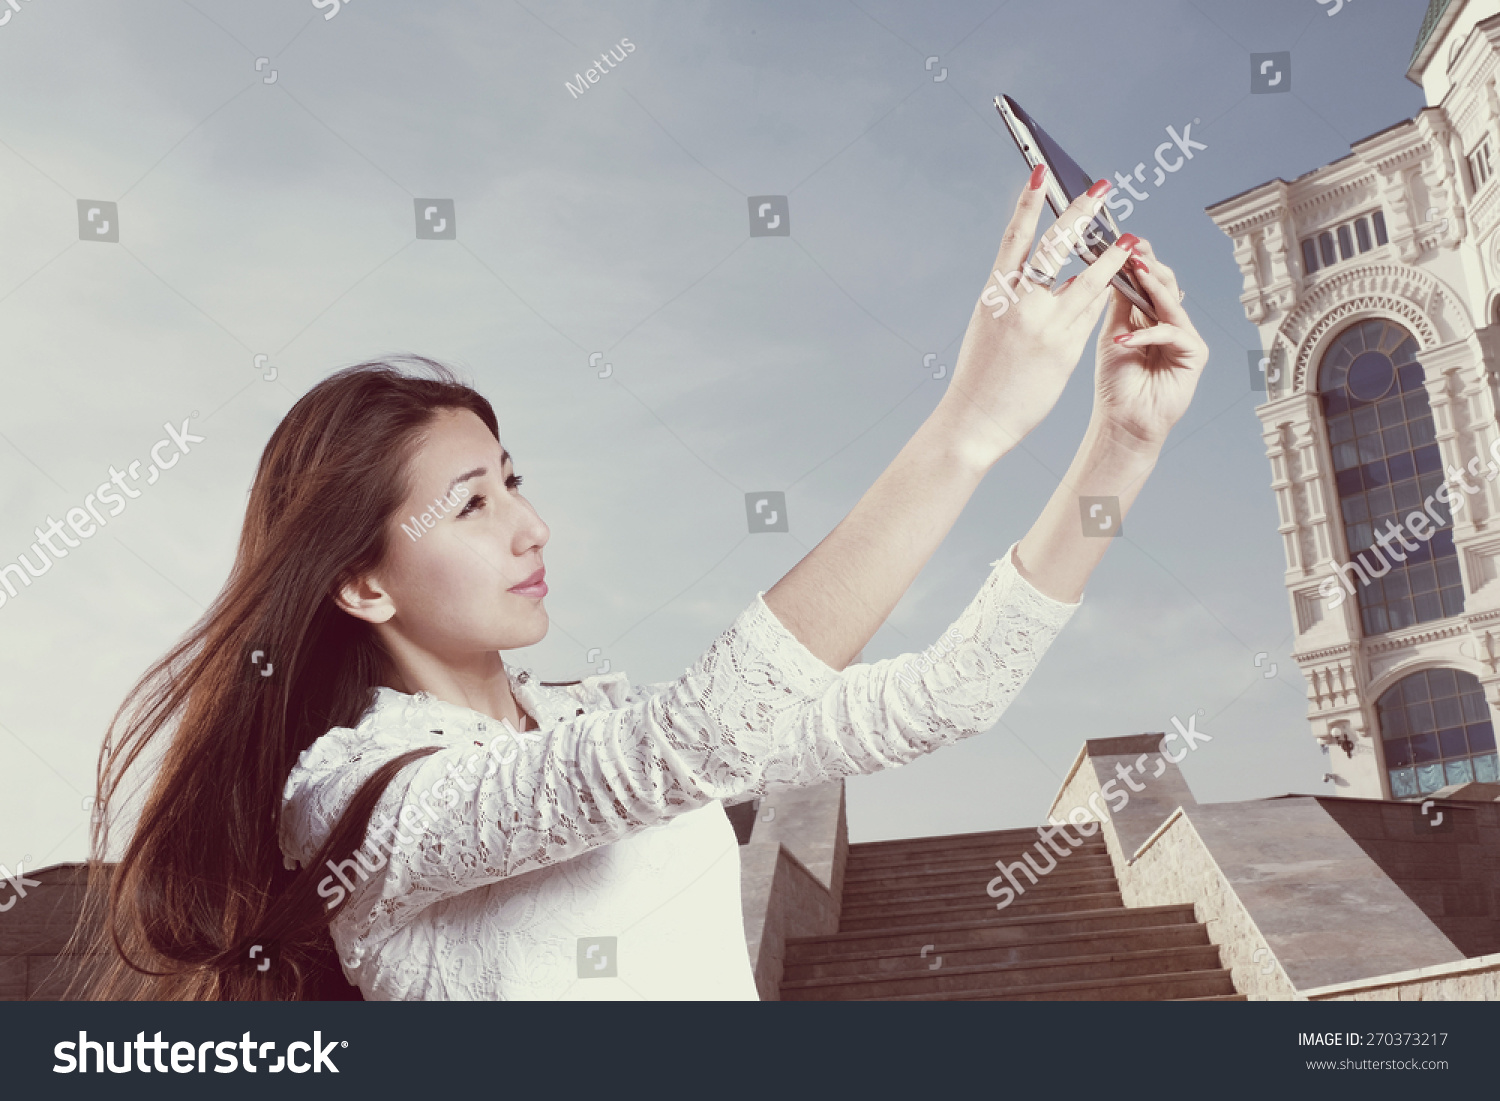 Instagram style vintage image iGen Girl Selfie. Young japanese women with long hair do selfie in city park afainst steps and clear blue sky with light haze, copyspace on the sky